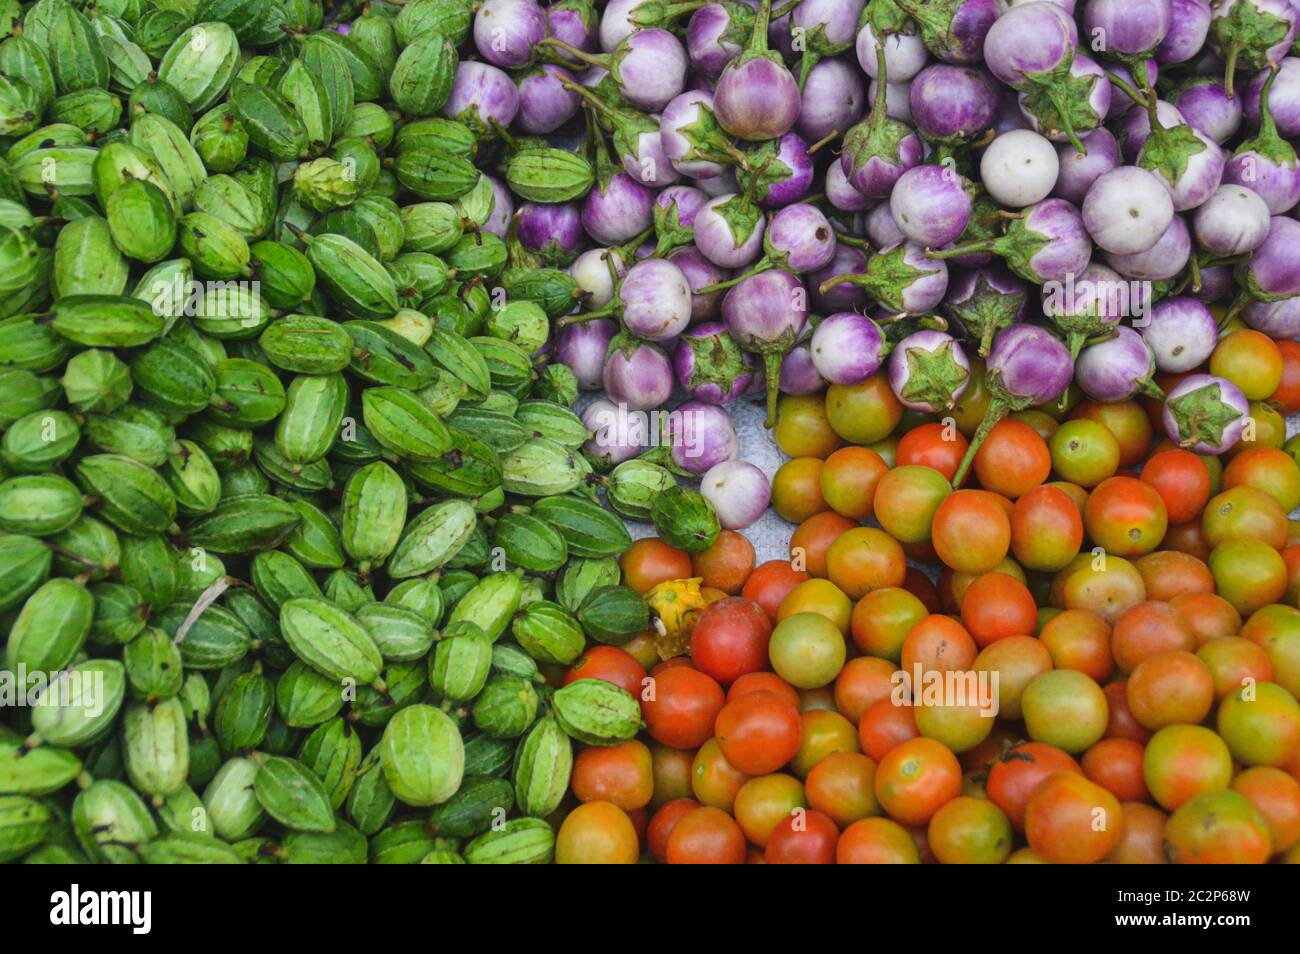 Fresh harvest of organically grown cucumbers, kermit eggplants and tomatoes Stock Photo